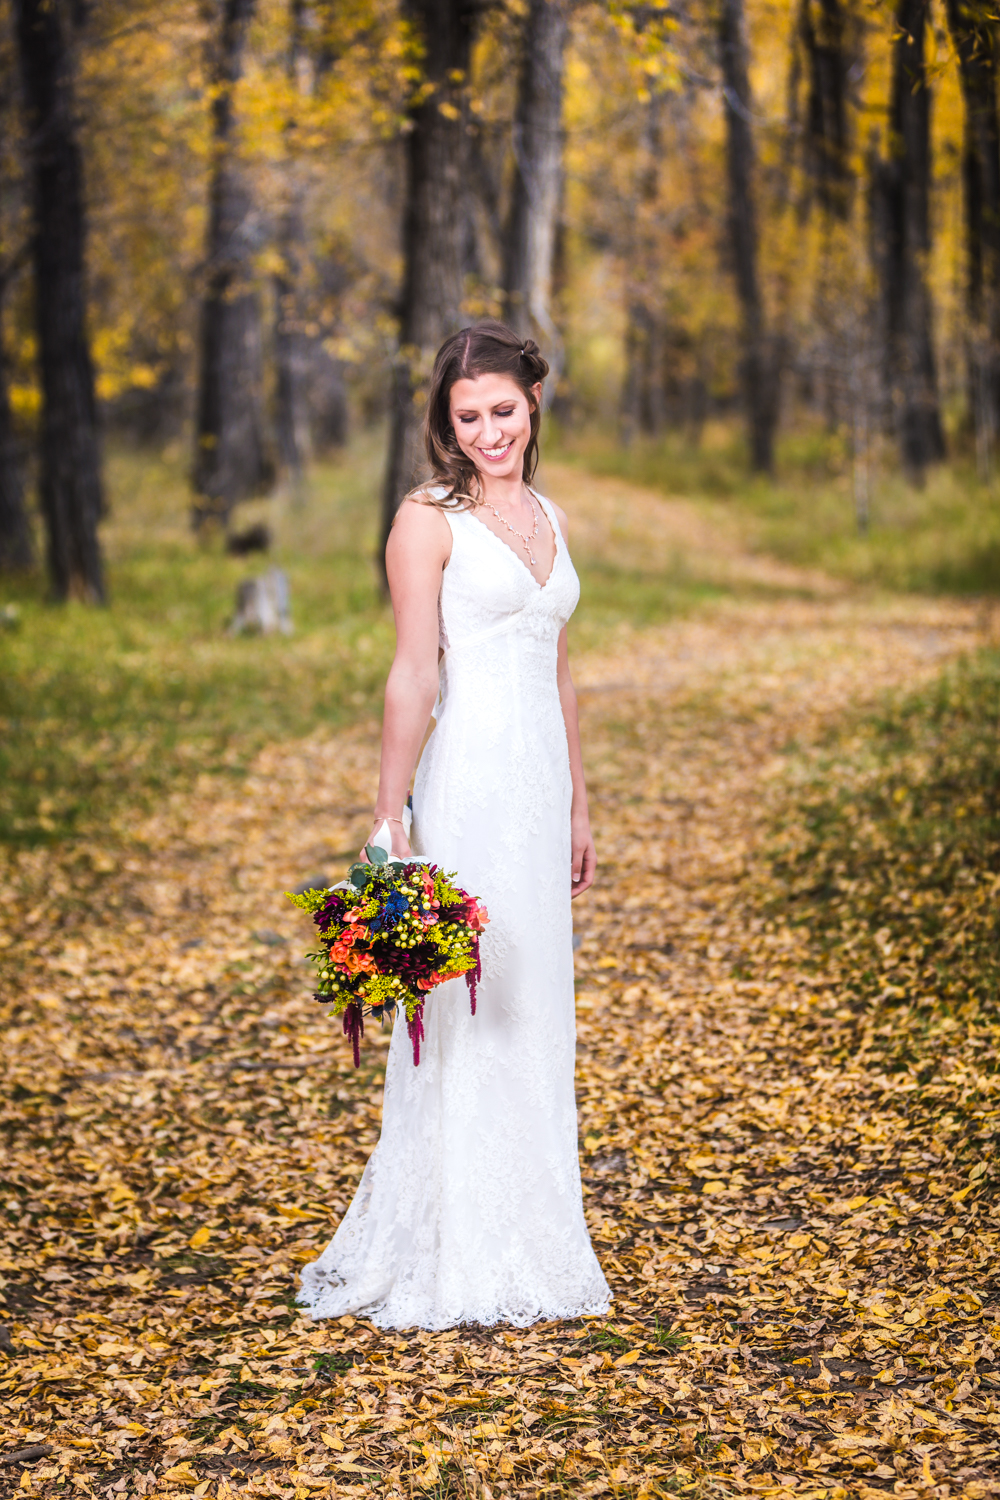 Fall wedding by JMGant Photography.